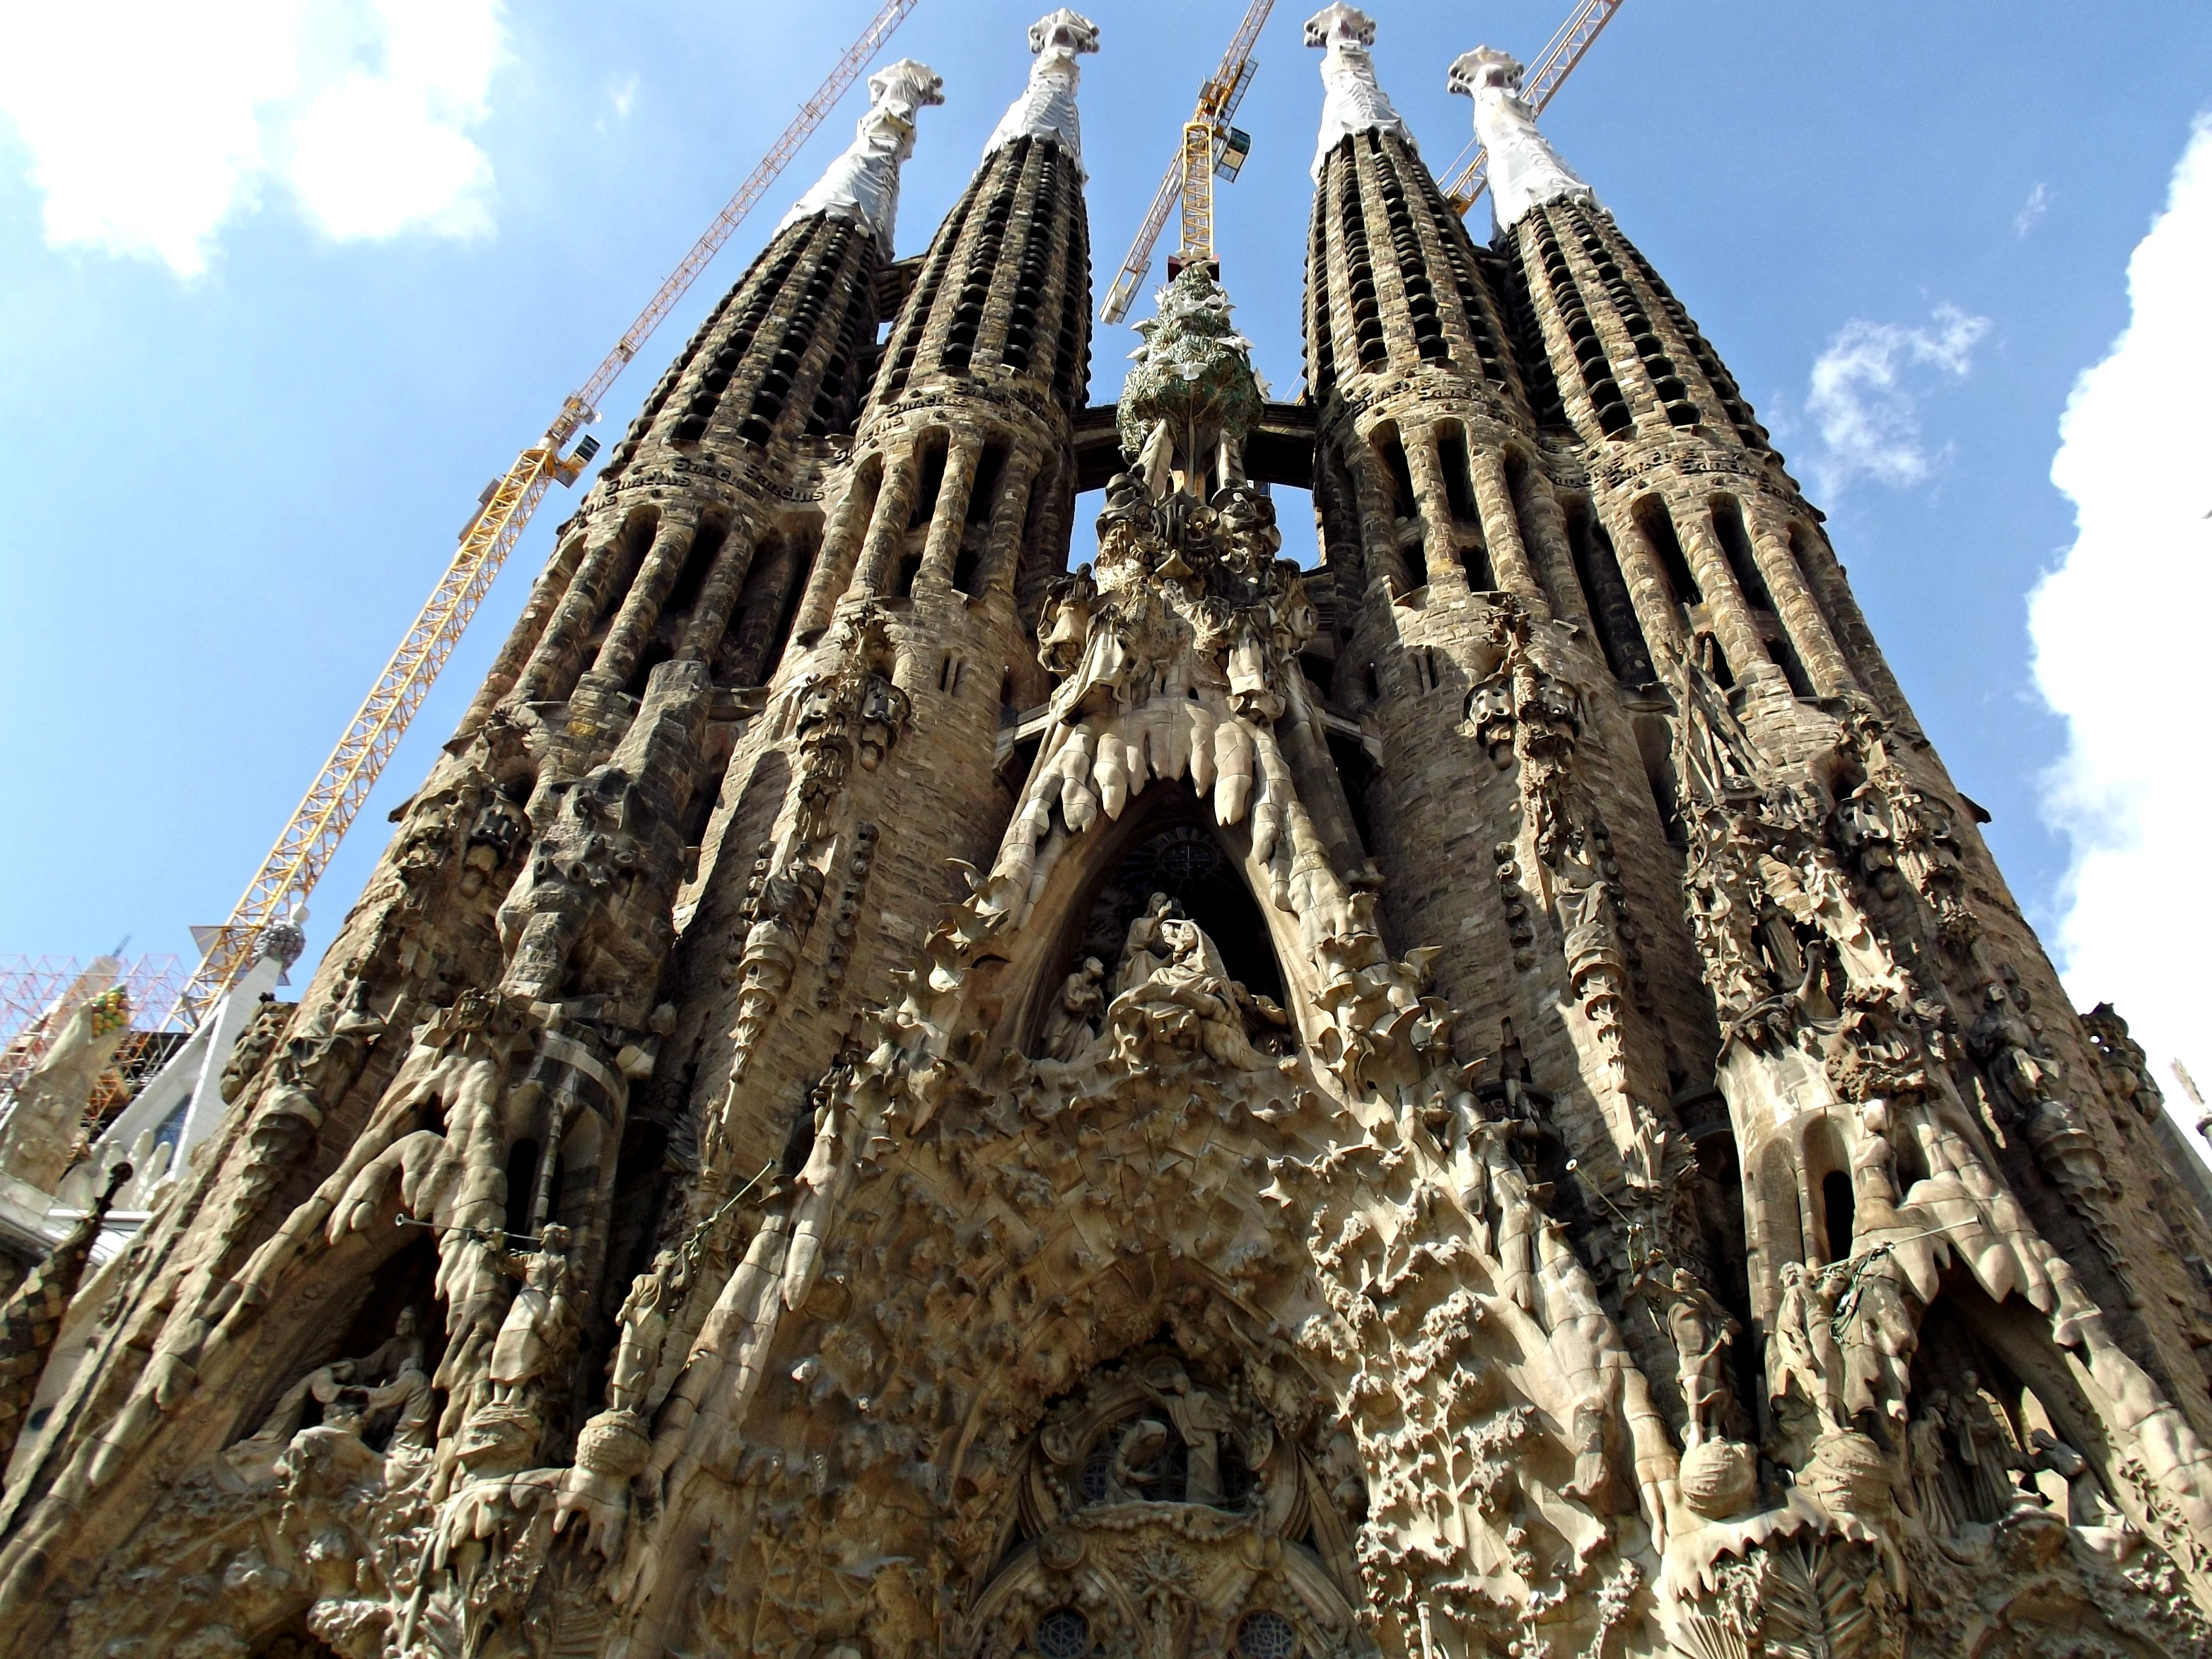 Continuing My Adventures In Barcelona Saturday Was Spent Visiting Without Doubt The Main Attraction And One Of Most Famous Buildings On Earth